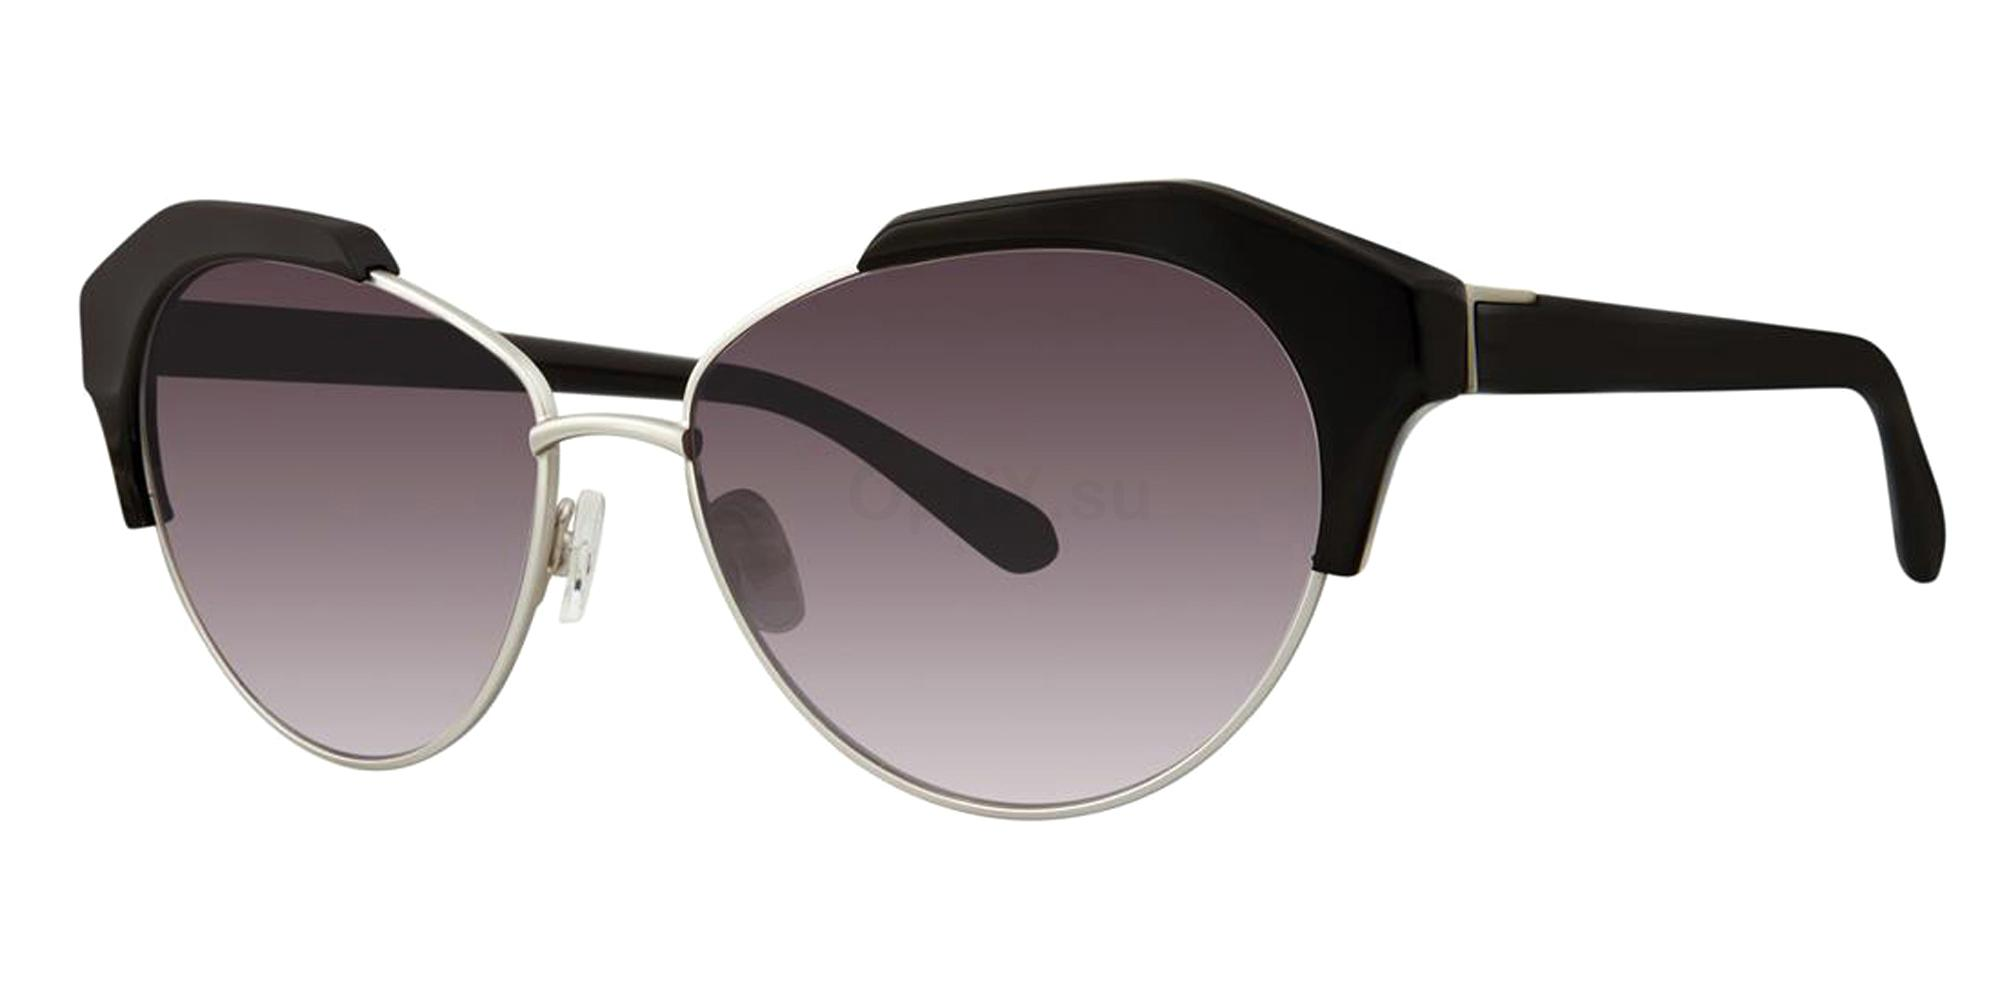 Black KEKE Sunglasses, Zac Posen